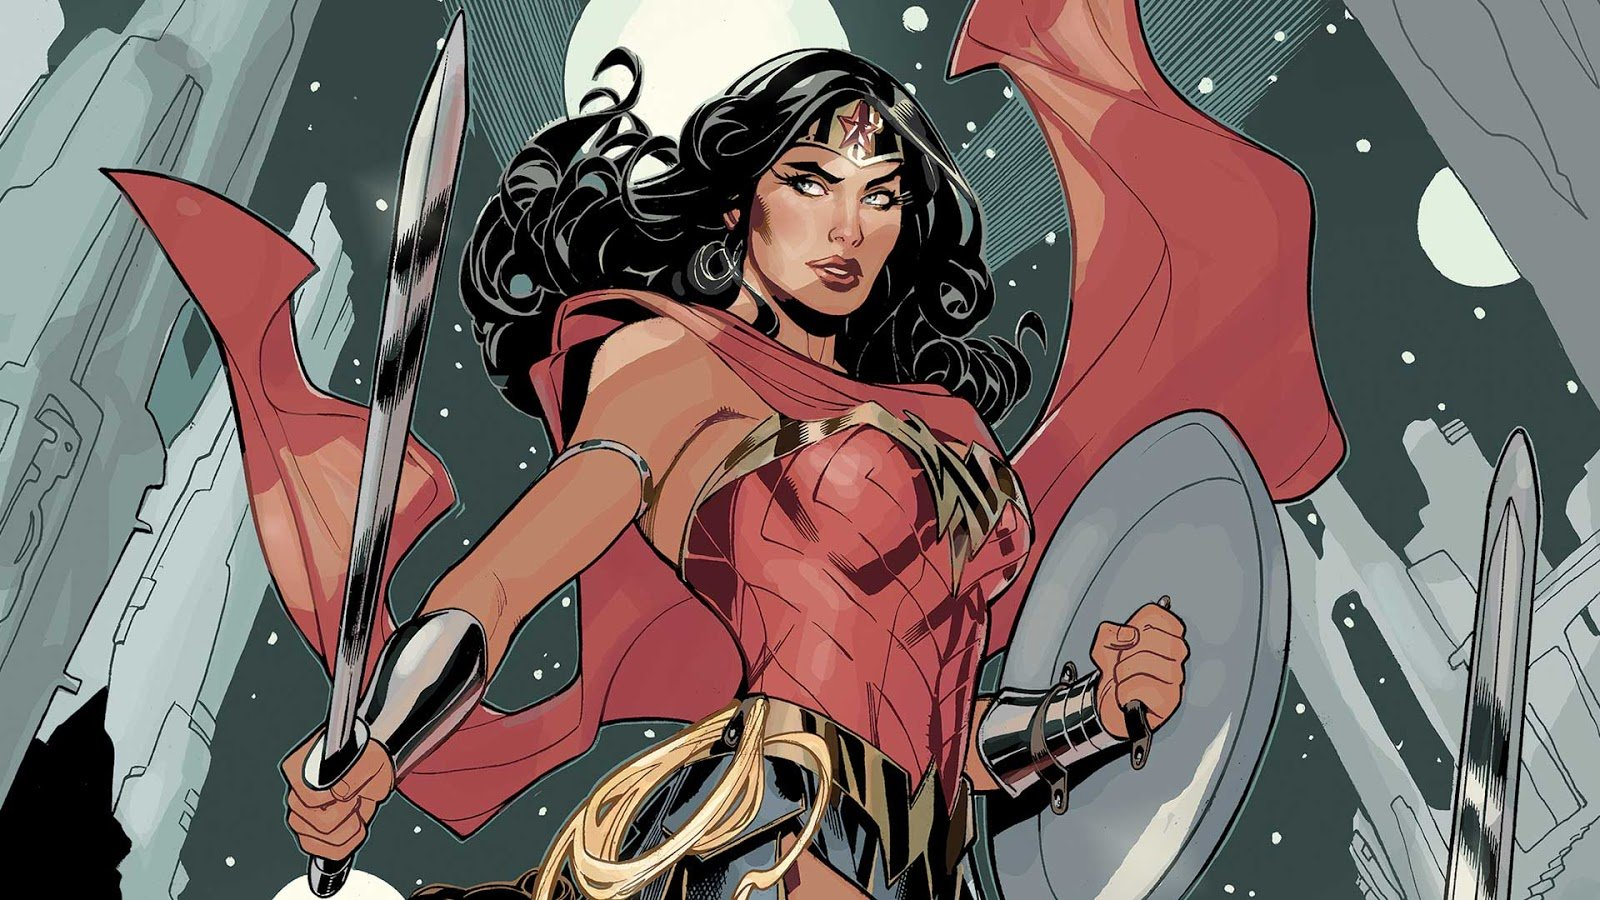 Can Wonder Woman Fly? 10 Interesting Facts About Wonder Woman You Need to Know!